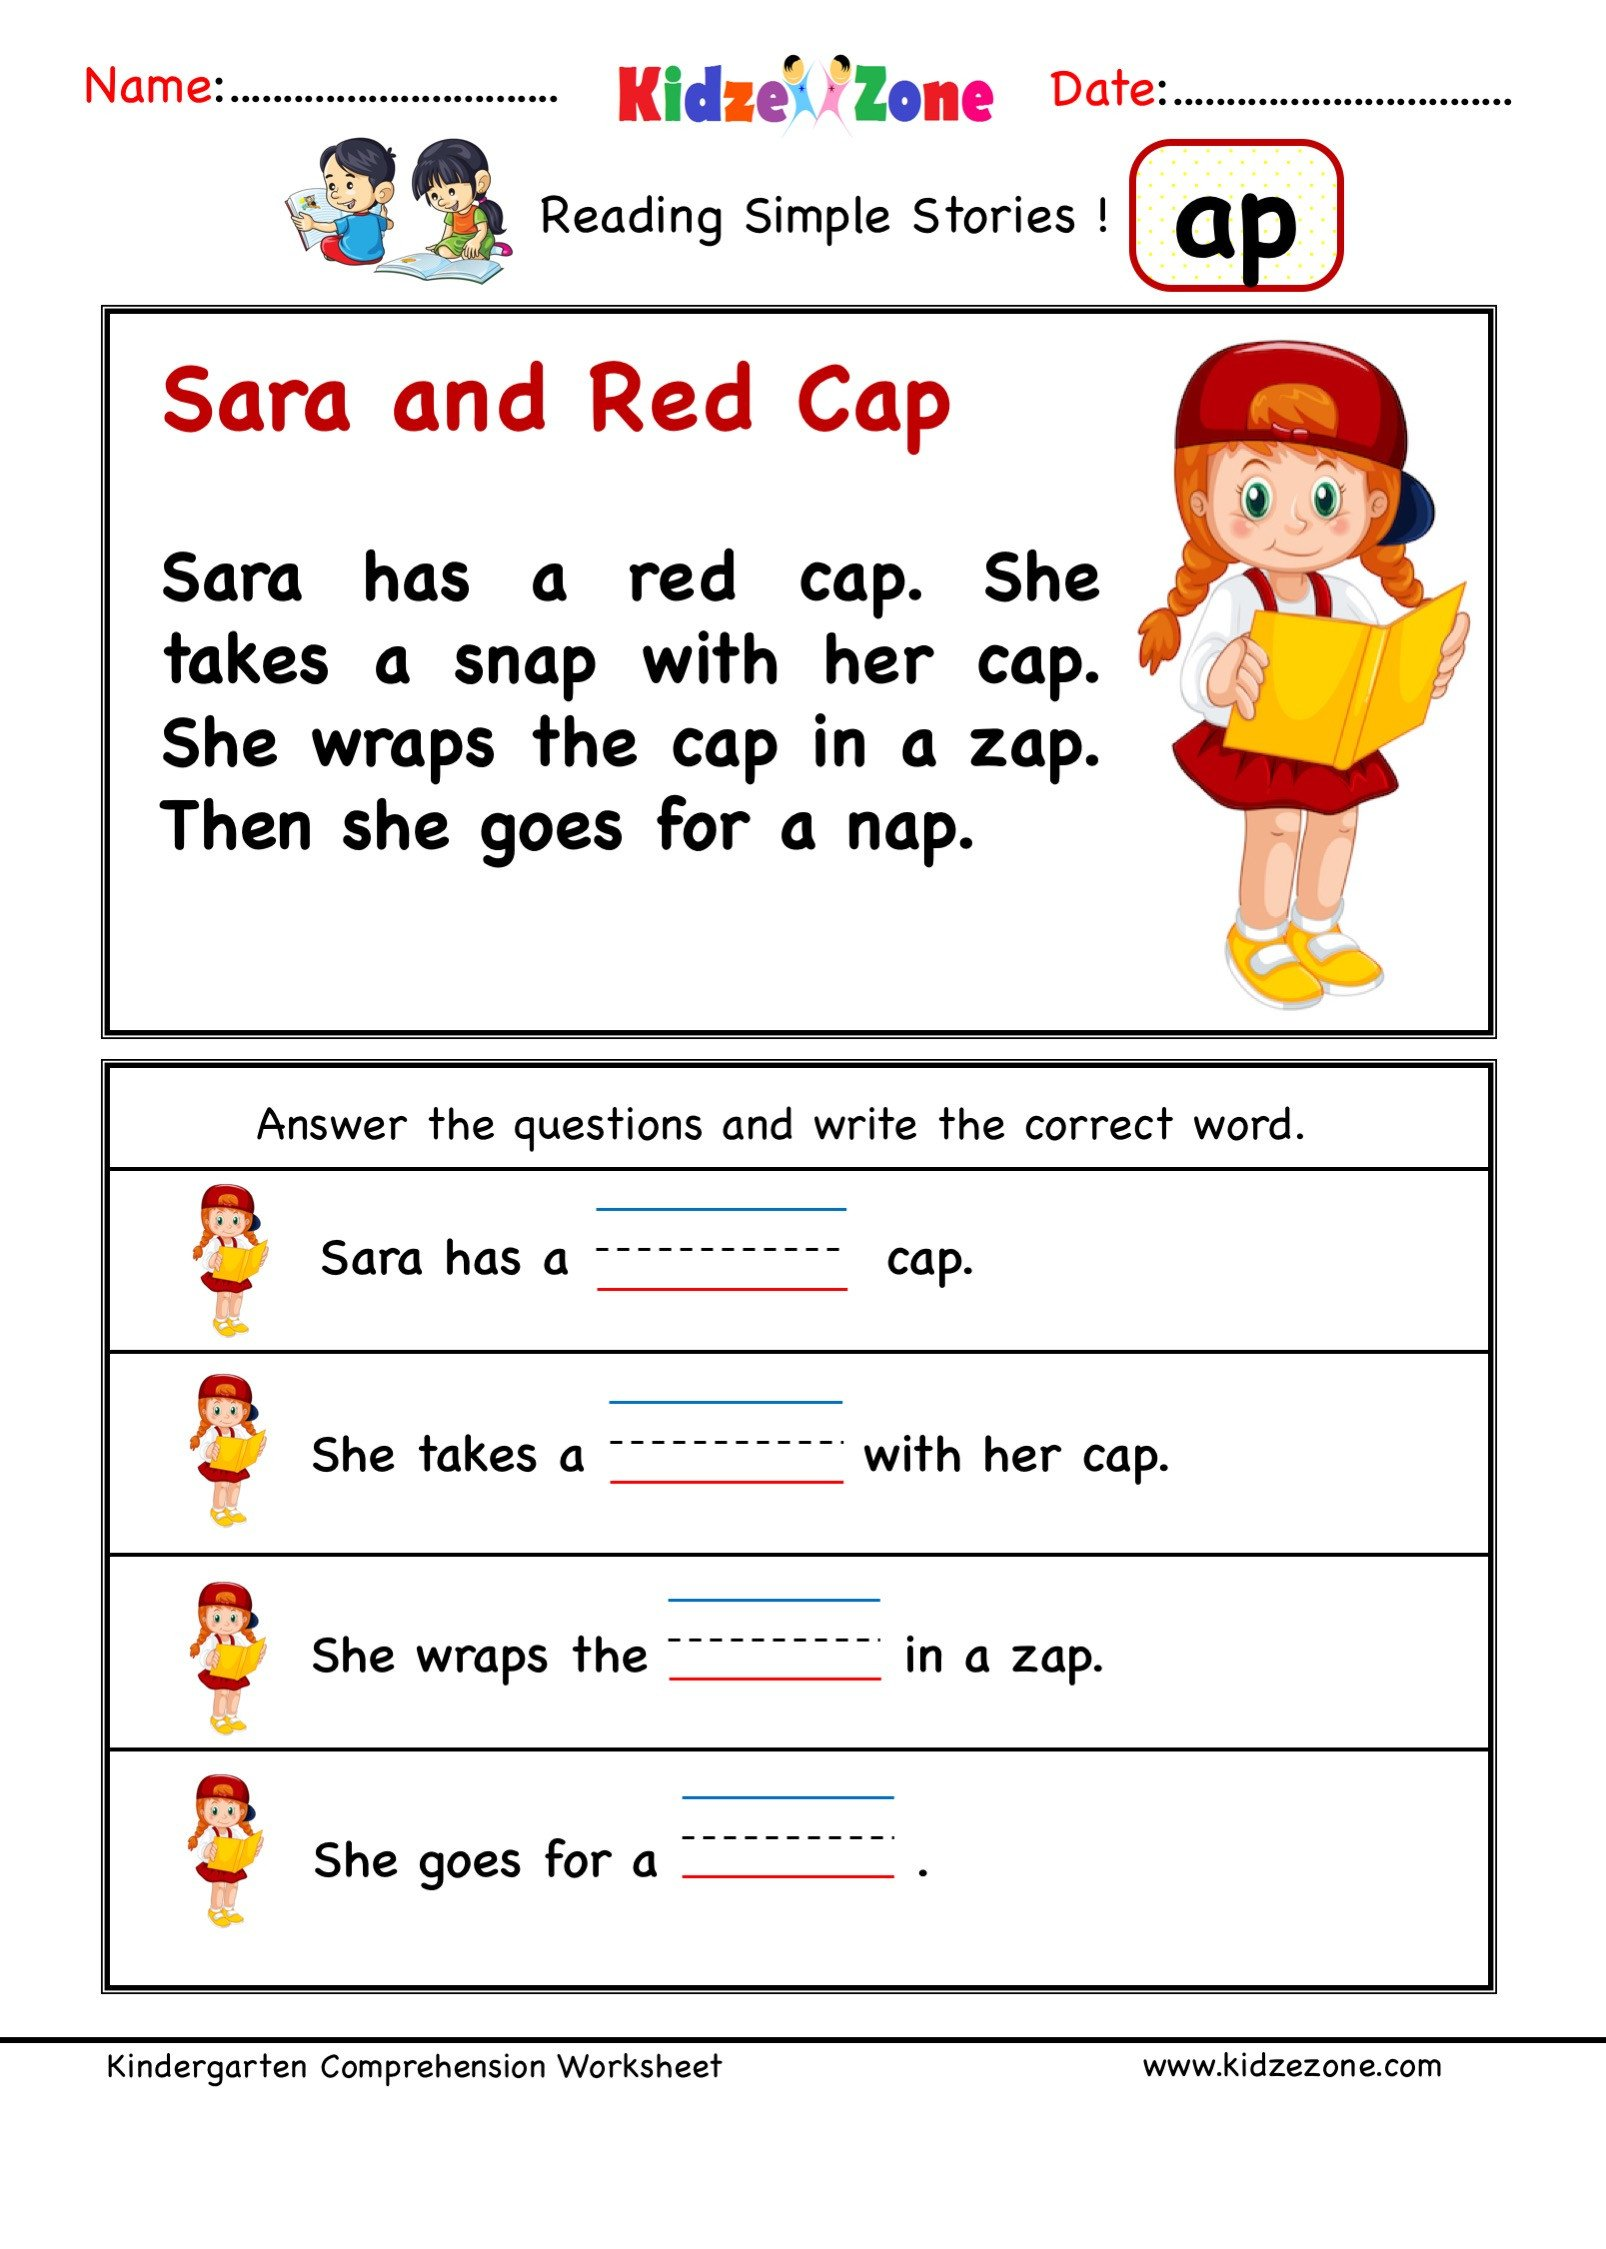 Ccvc Words Worksheets Kindergarten Kindergarten Worksheets Ap Word Family Prehension 3